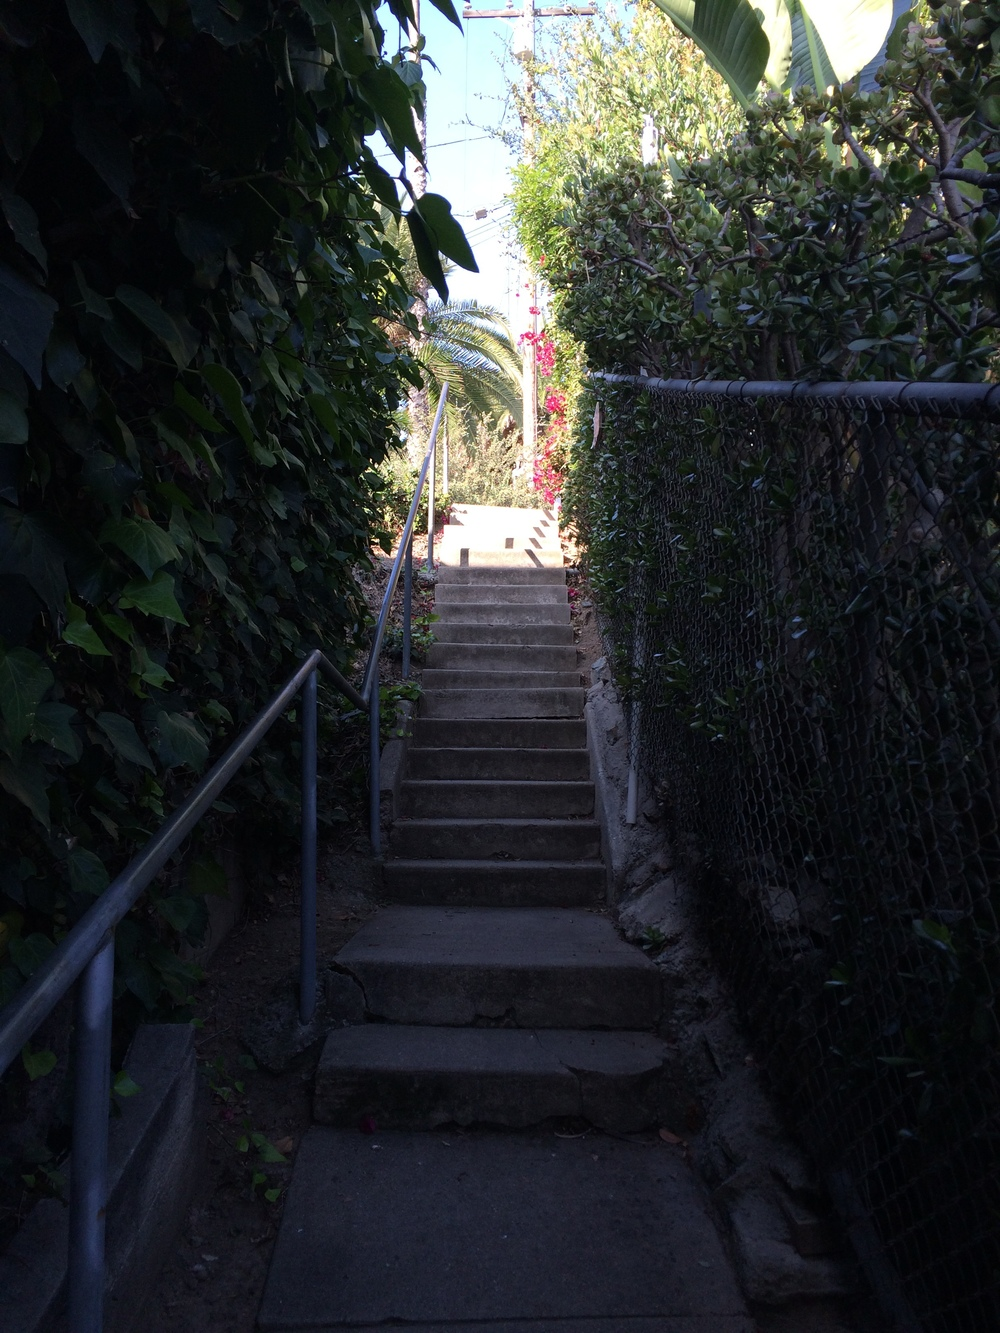 Directions: As Noted Above, The Best Way To Access The Stairs Is At The  Junction Of Windsor And Canterbury, And There Is Street Parking Available.